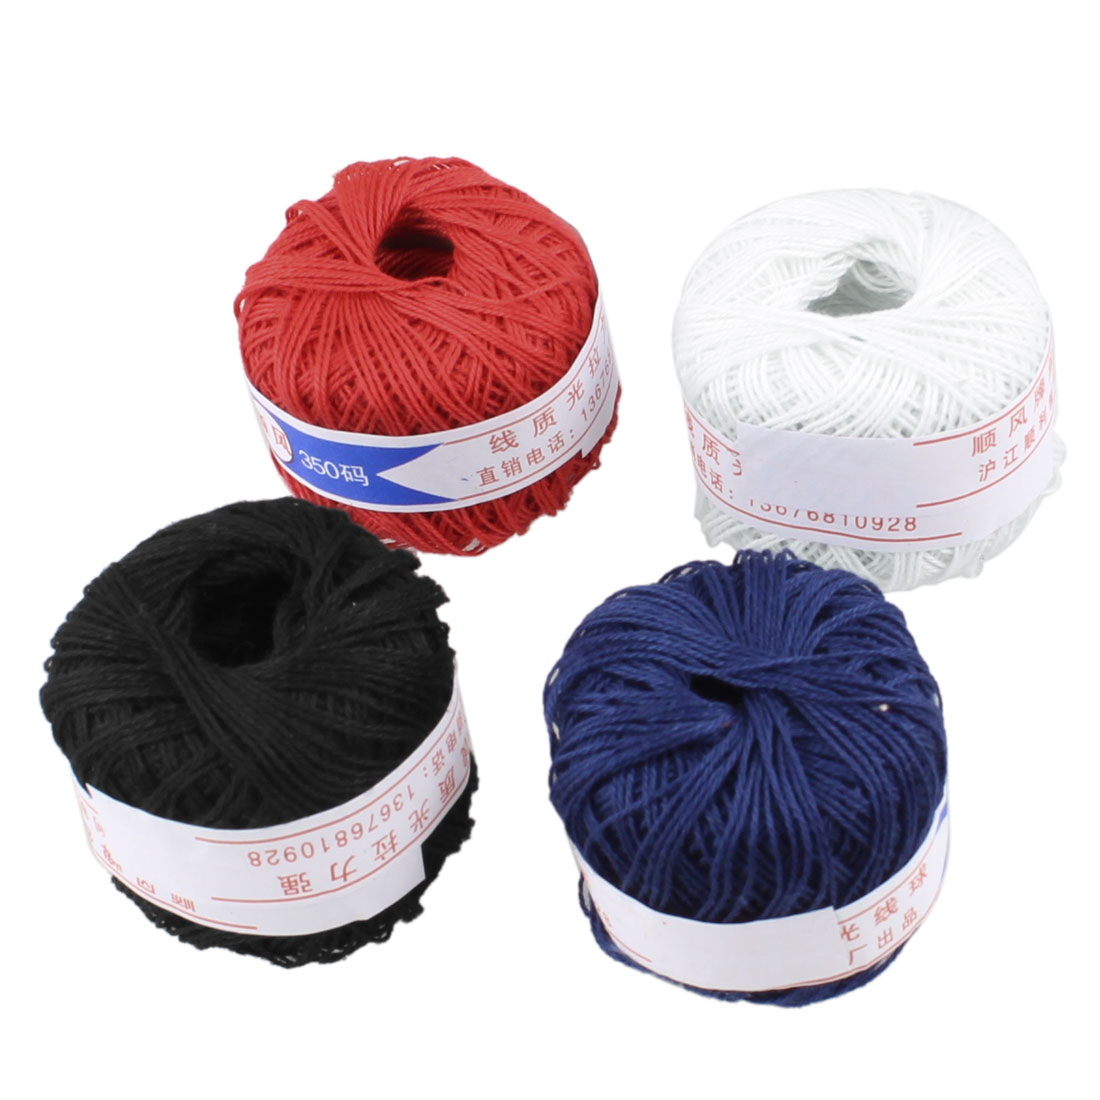 Assorted Color Cotton Thread Ball Travel Embroidery Sewing Kit 4 Pcs